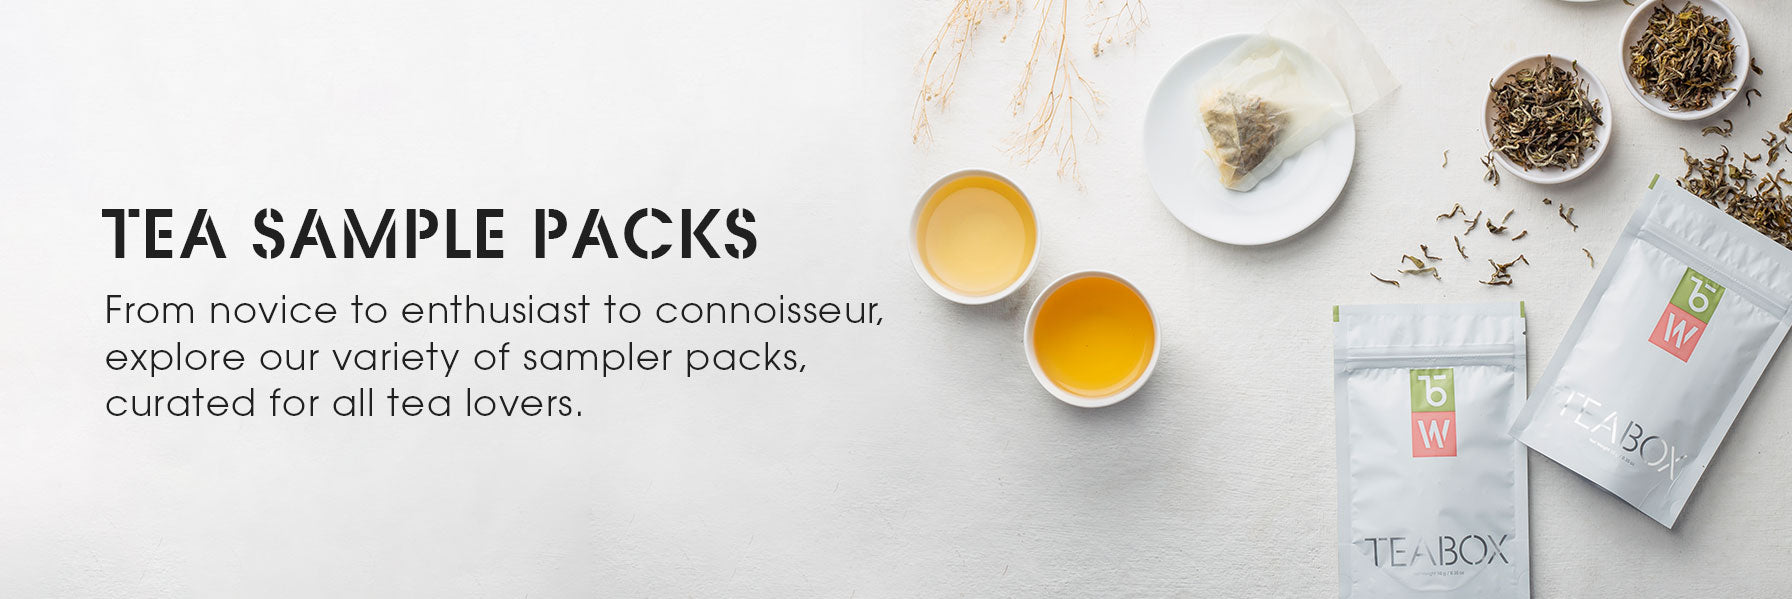 Tea Sample Packs